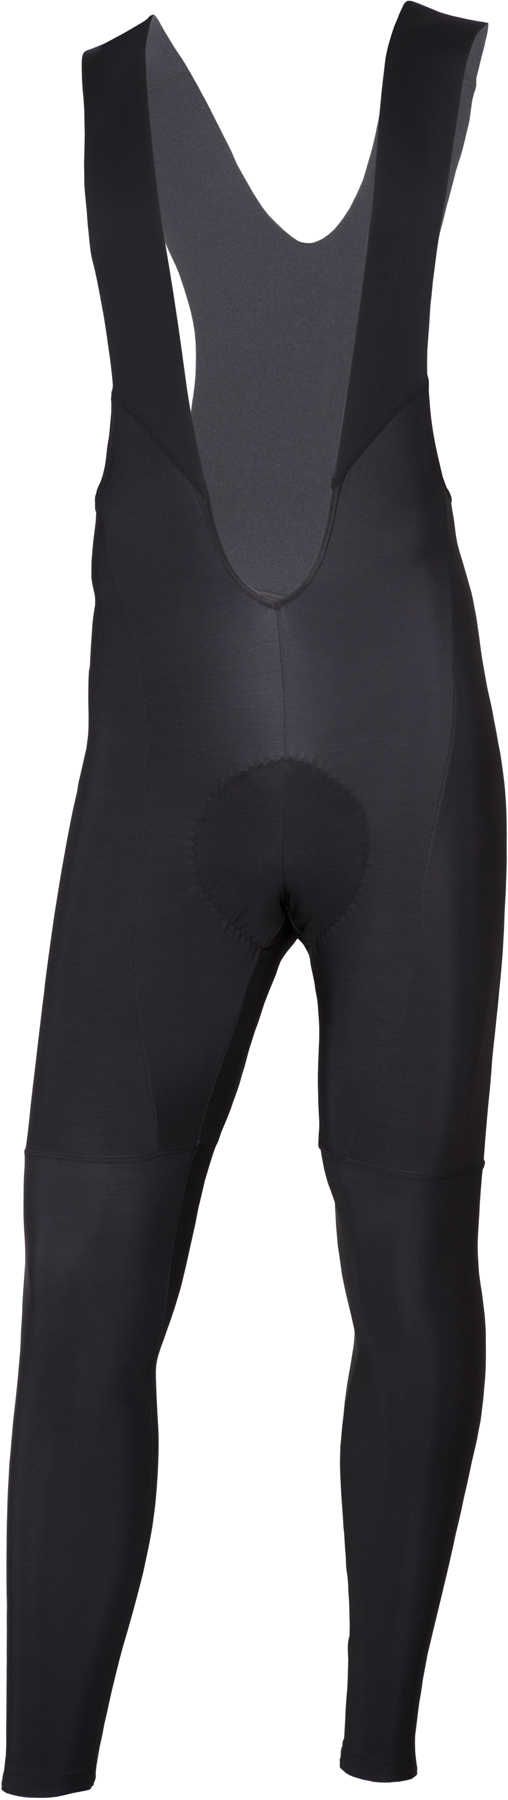 Etxeondo Ilun Bib Tights | Trousers